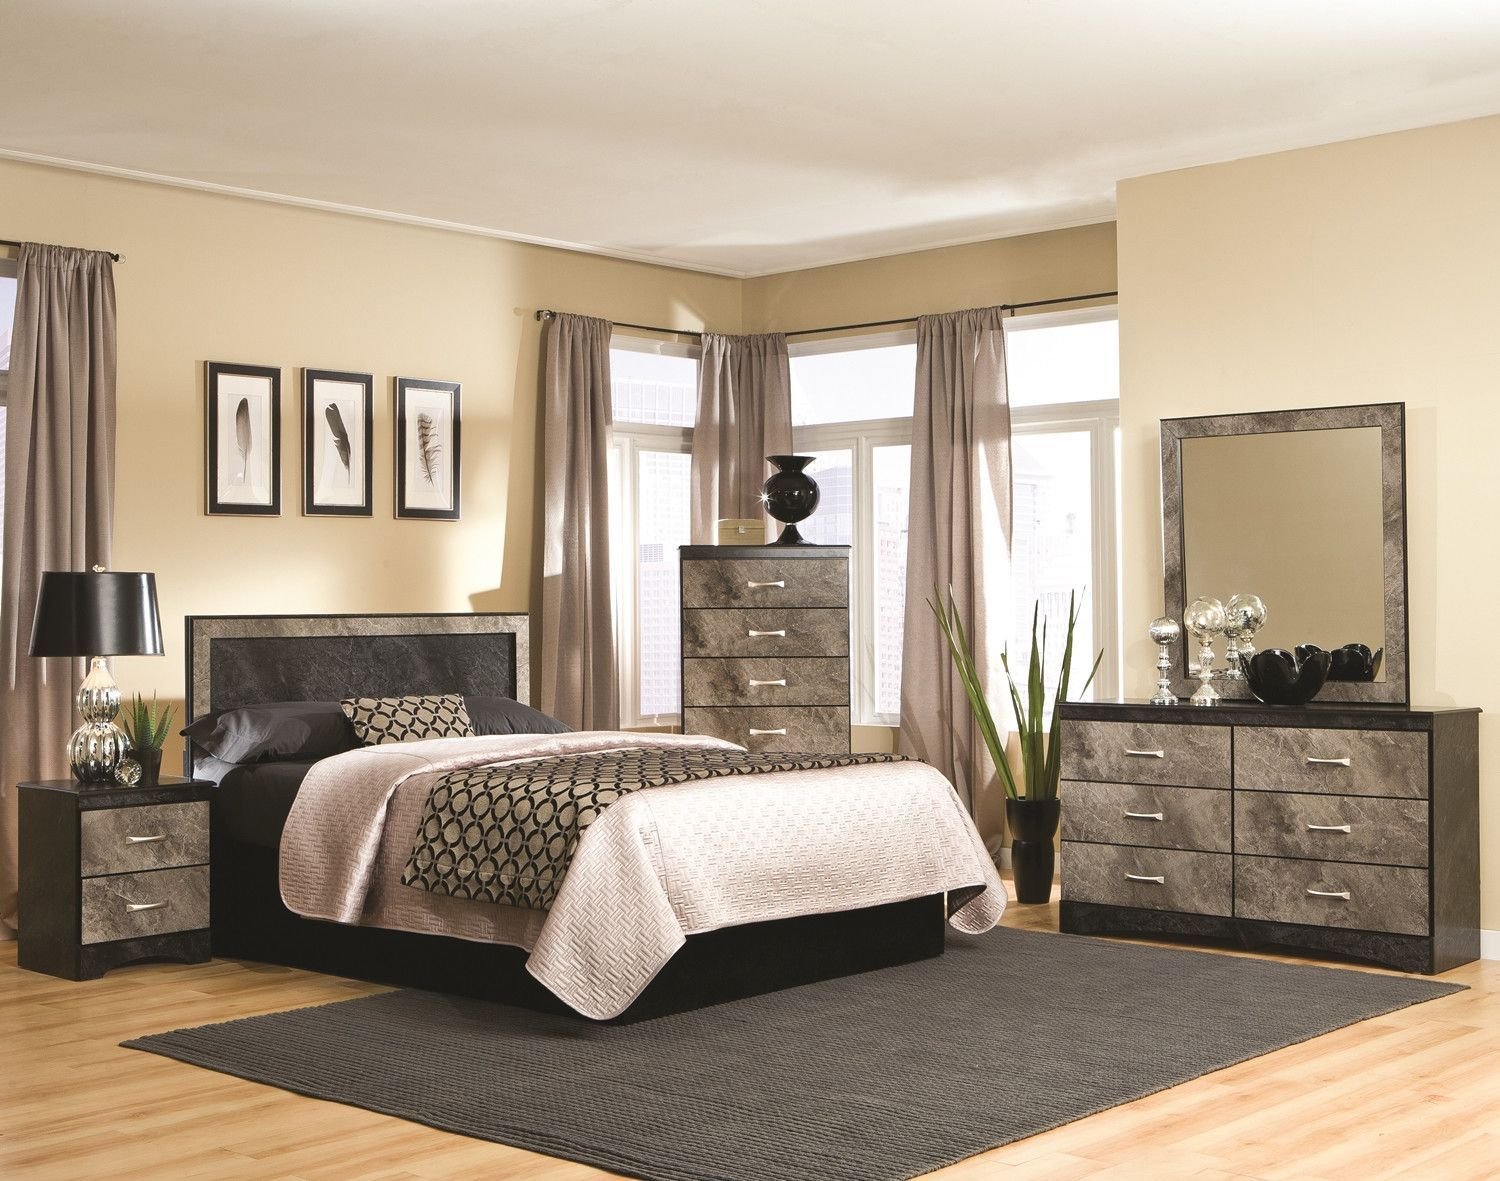 Kith furniture memphis bedroom online furniture and buying tips